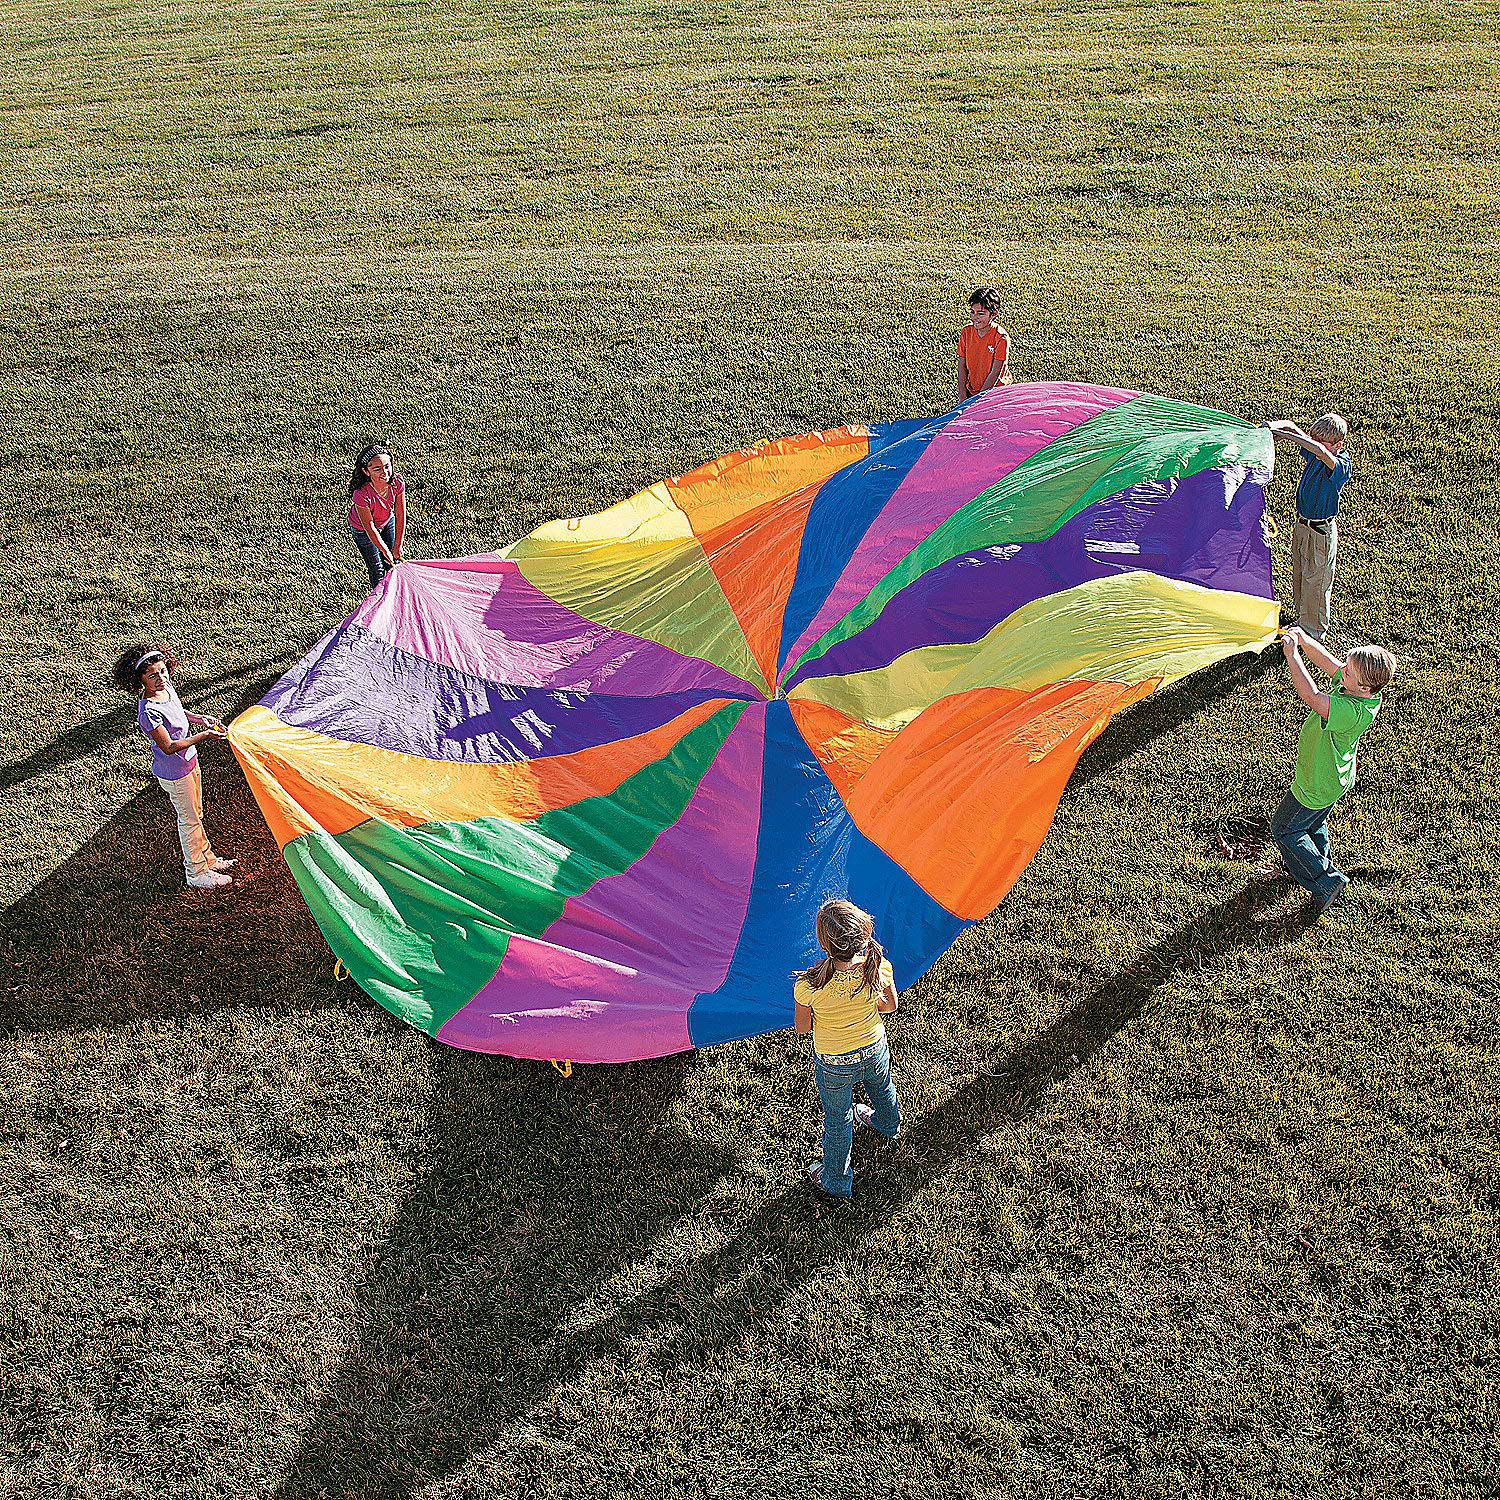 Fun Express - 20' Super Sturdy Parachute - Toys - Active Play - Recess & PE Play - 1 Piece by Fun Express